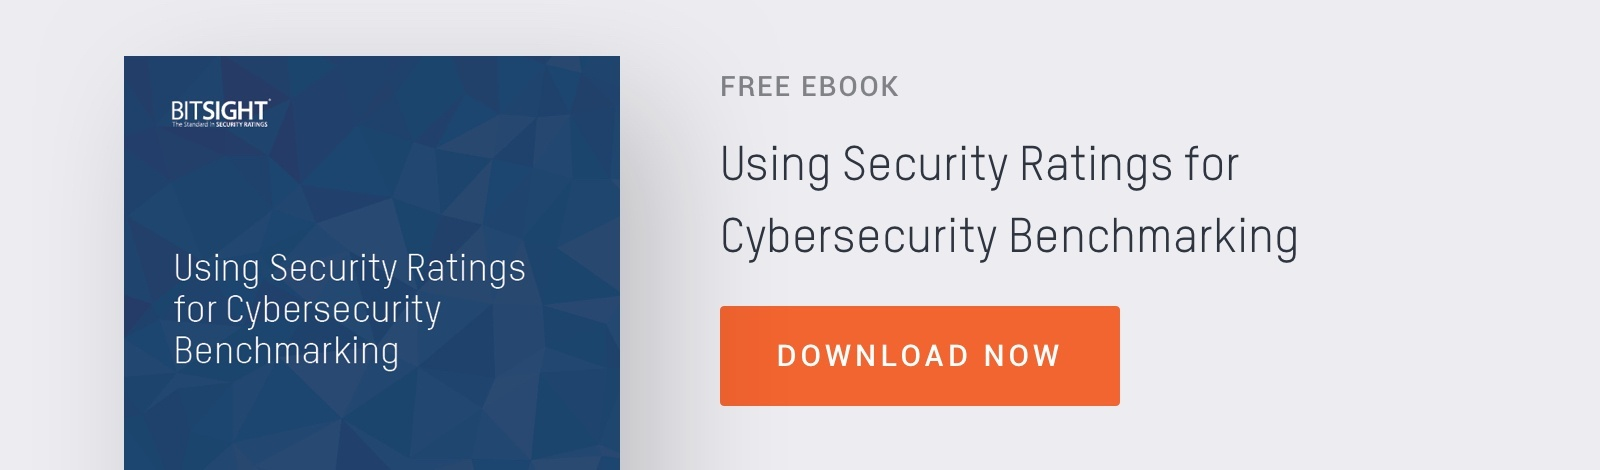 Using Security Ratings for Cybersecurity Benchmarking Ebook